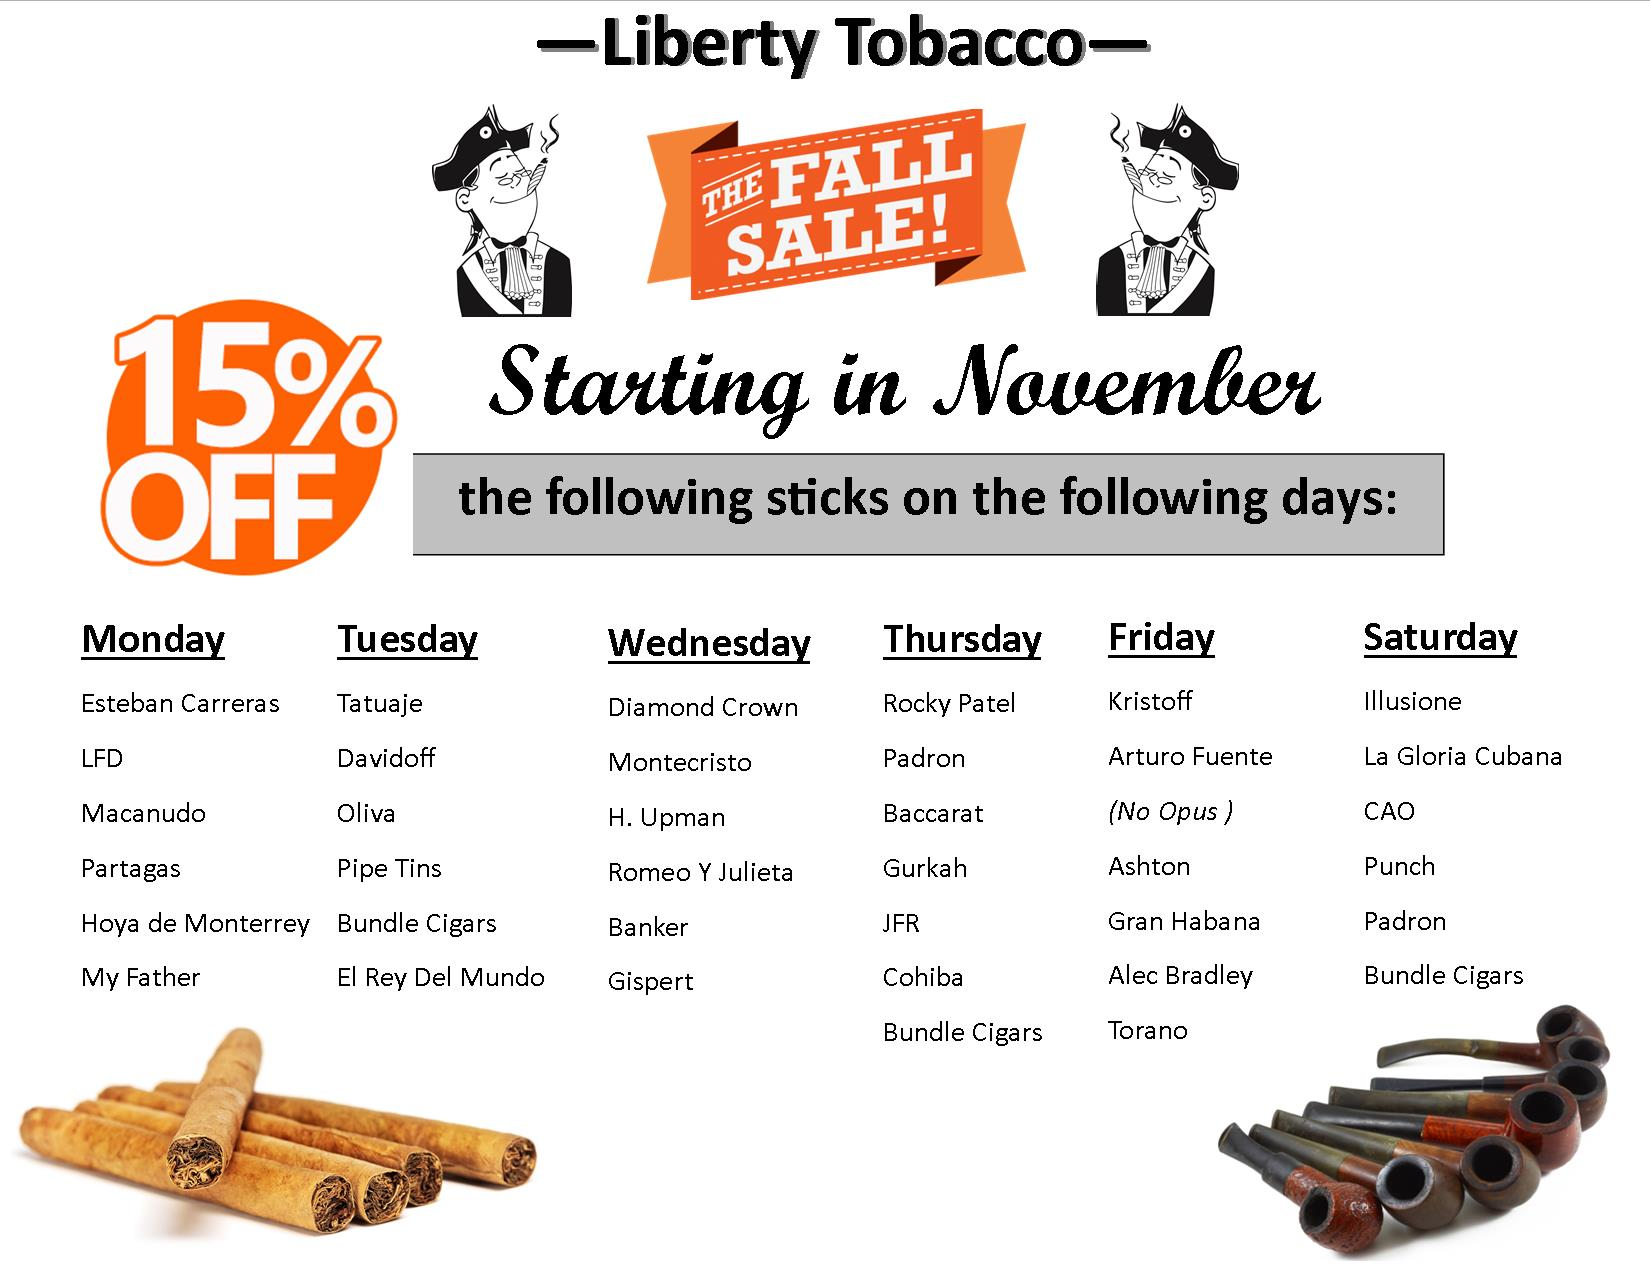 November Sales Promotion at Liberty Tobacco